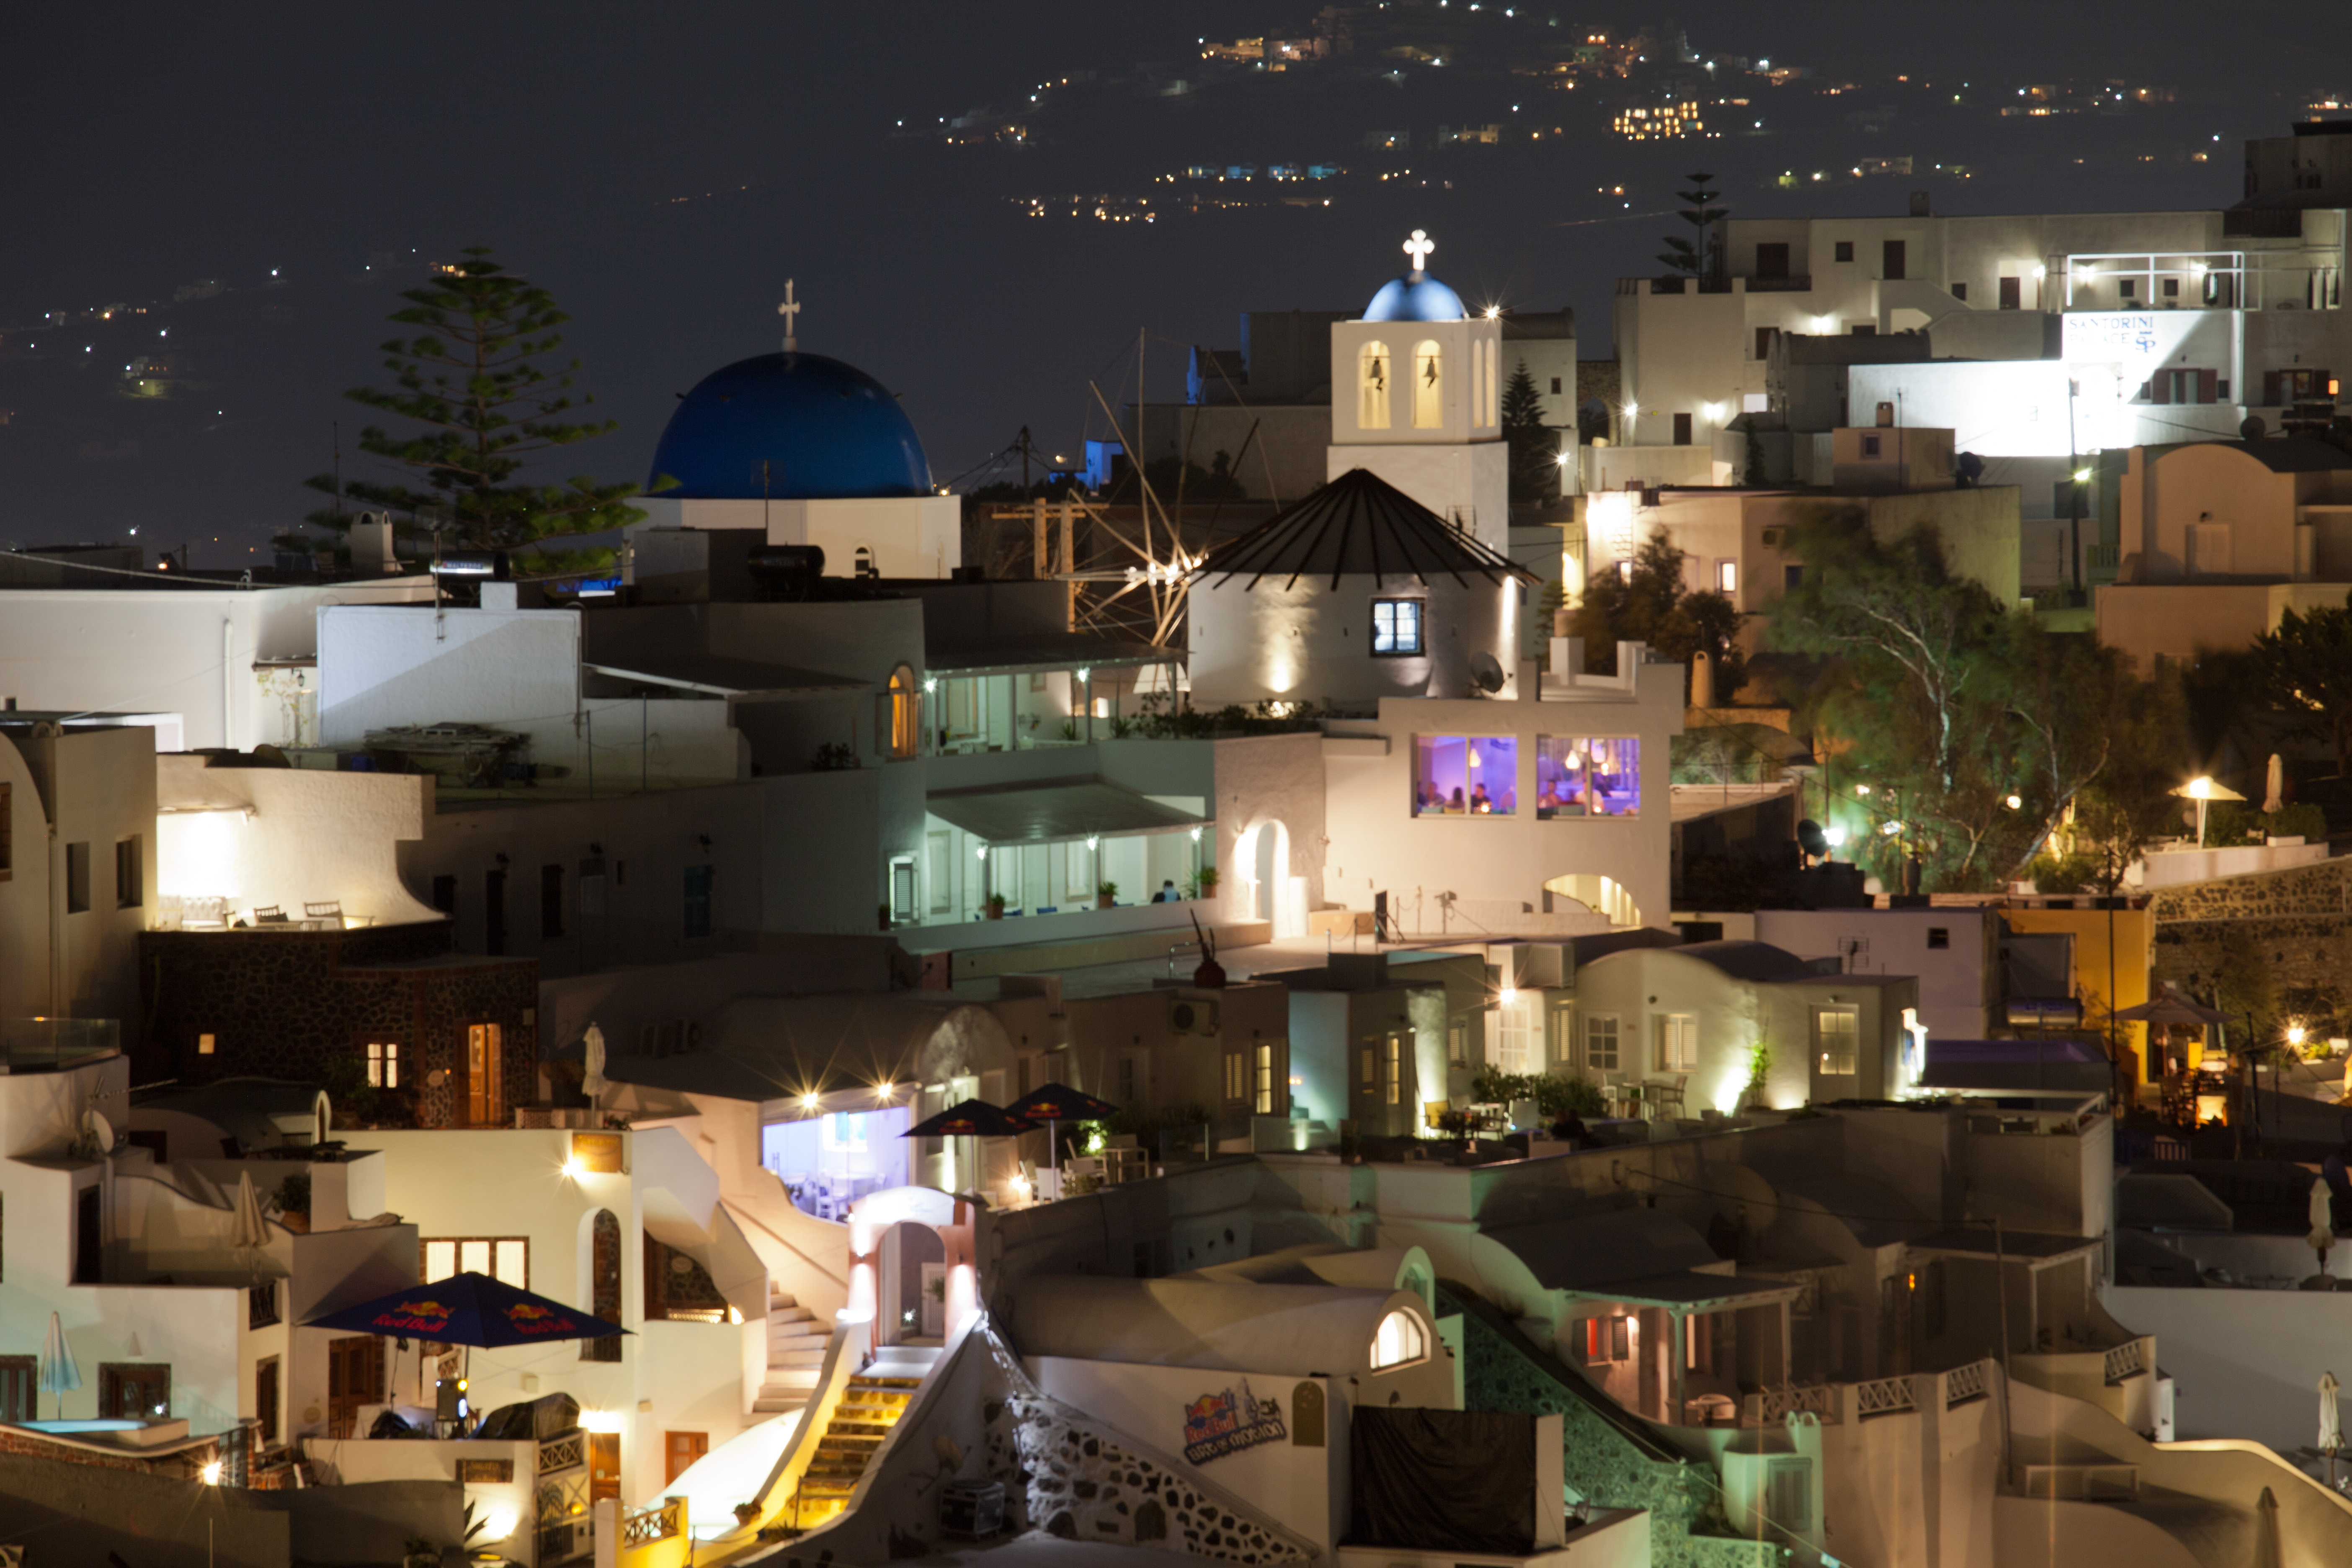 Town of Firostefani, Santorini, Greece at night with blue domed church